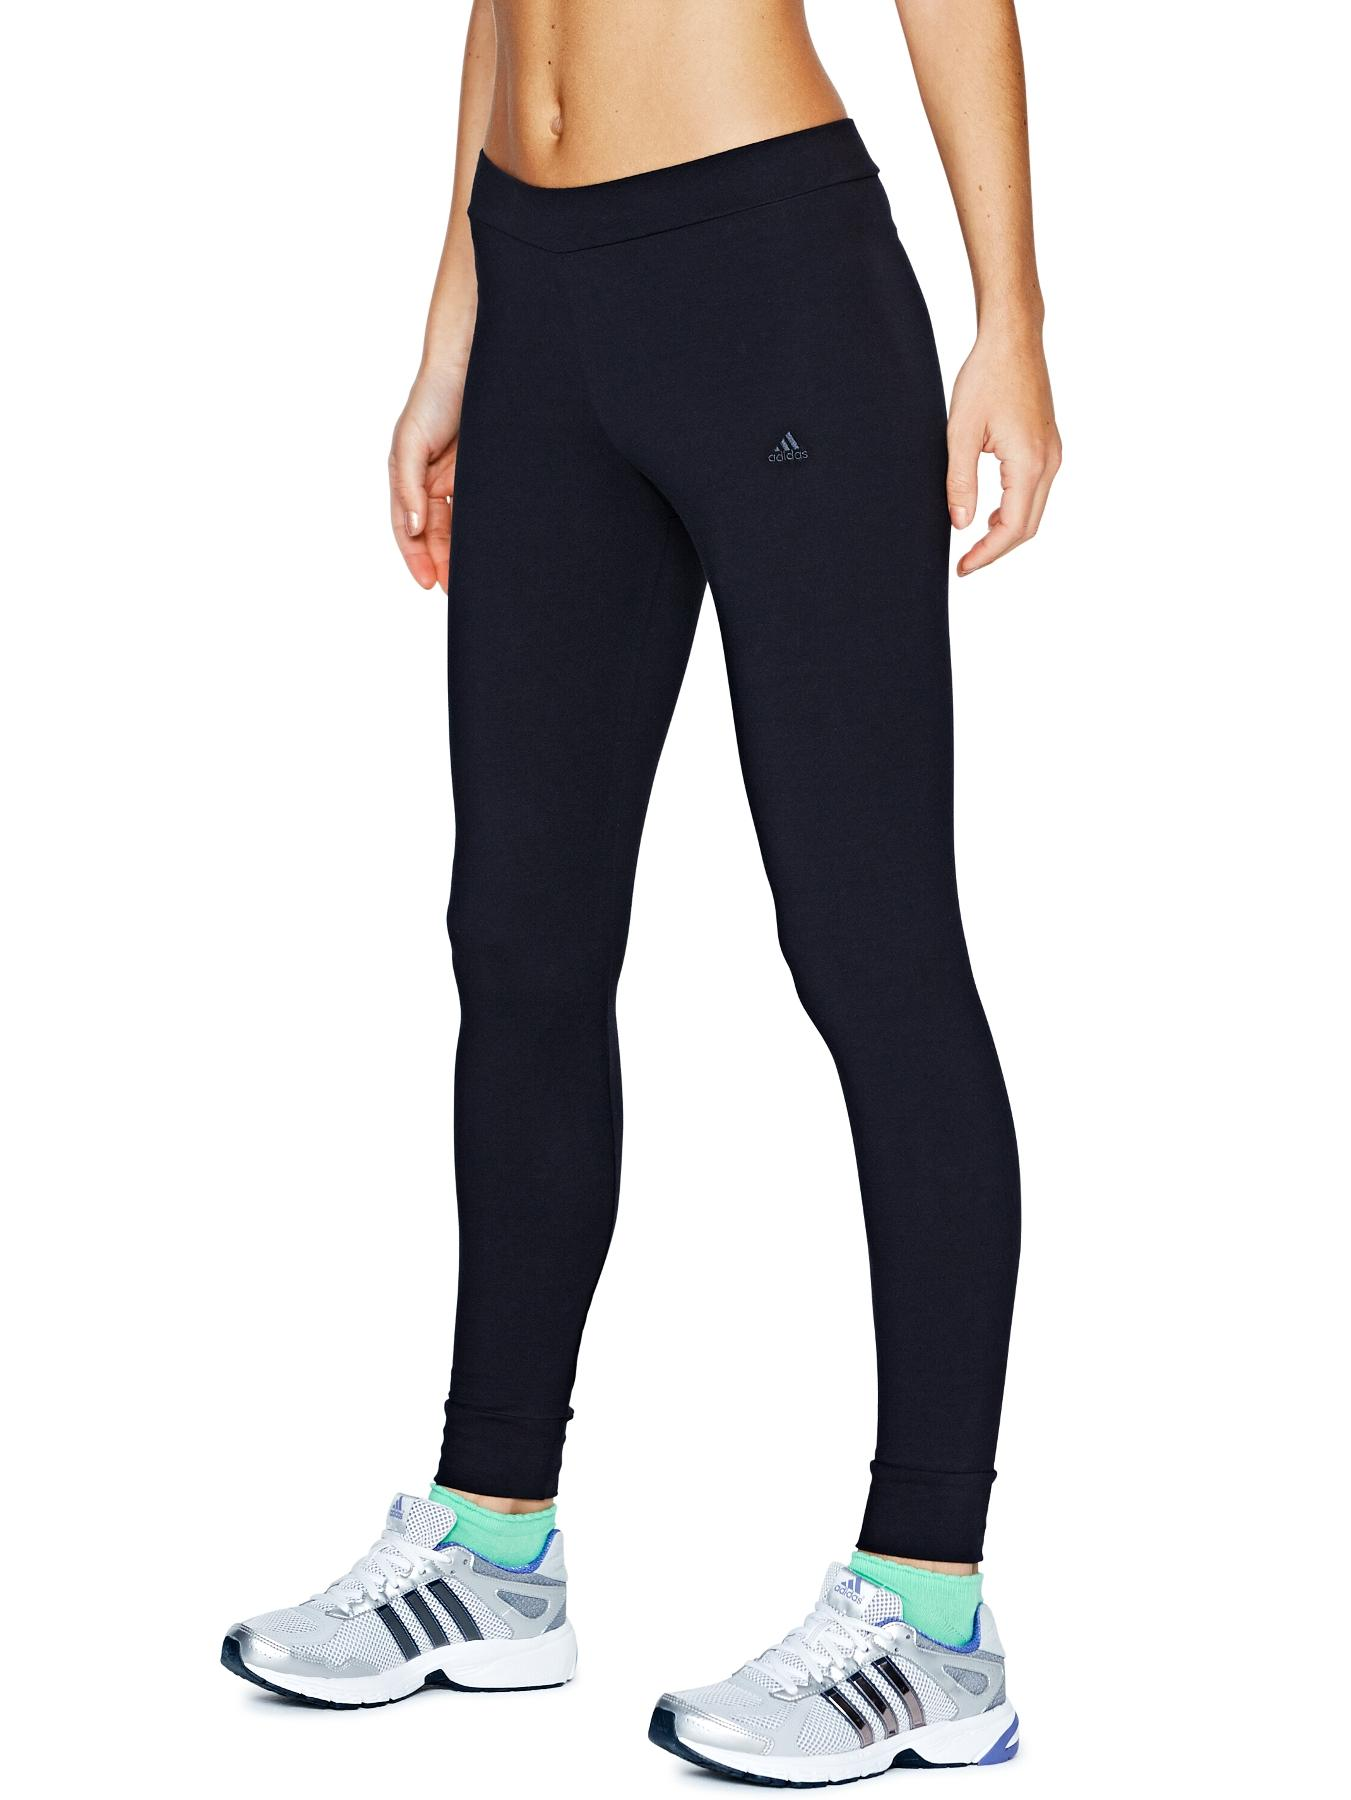 Clima Essentials Tights, Black